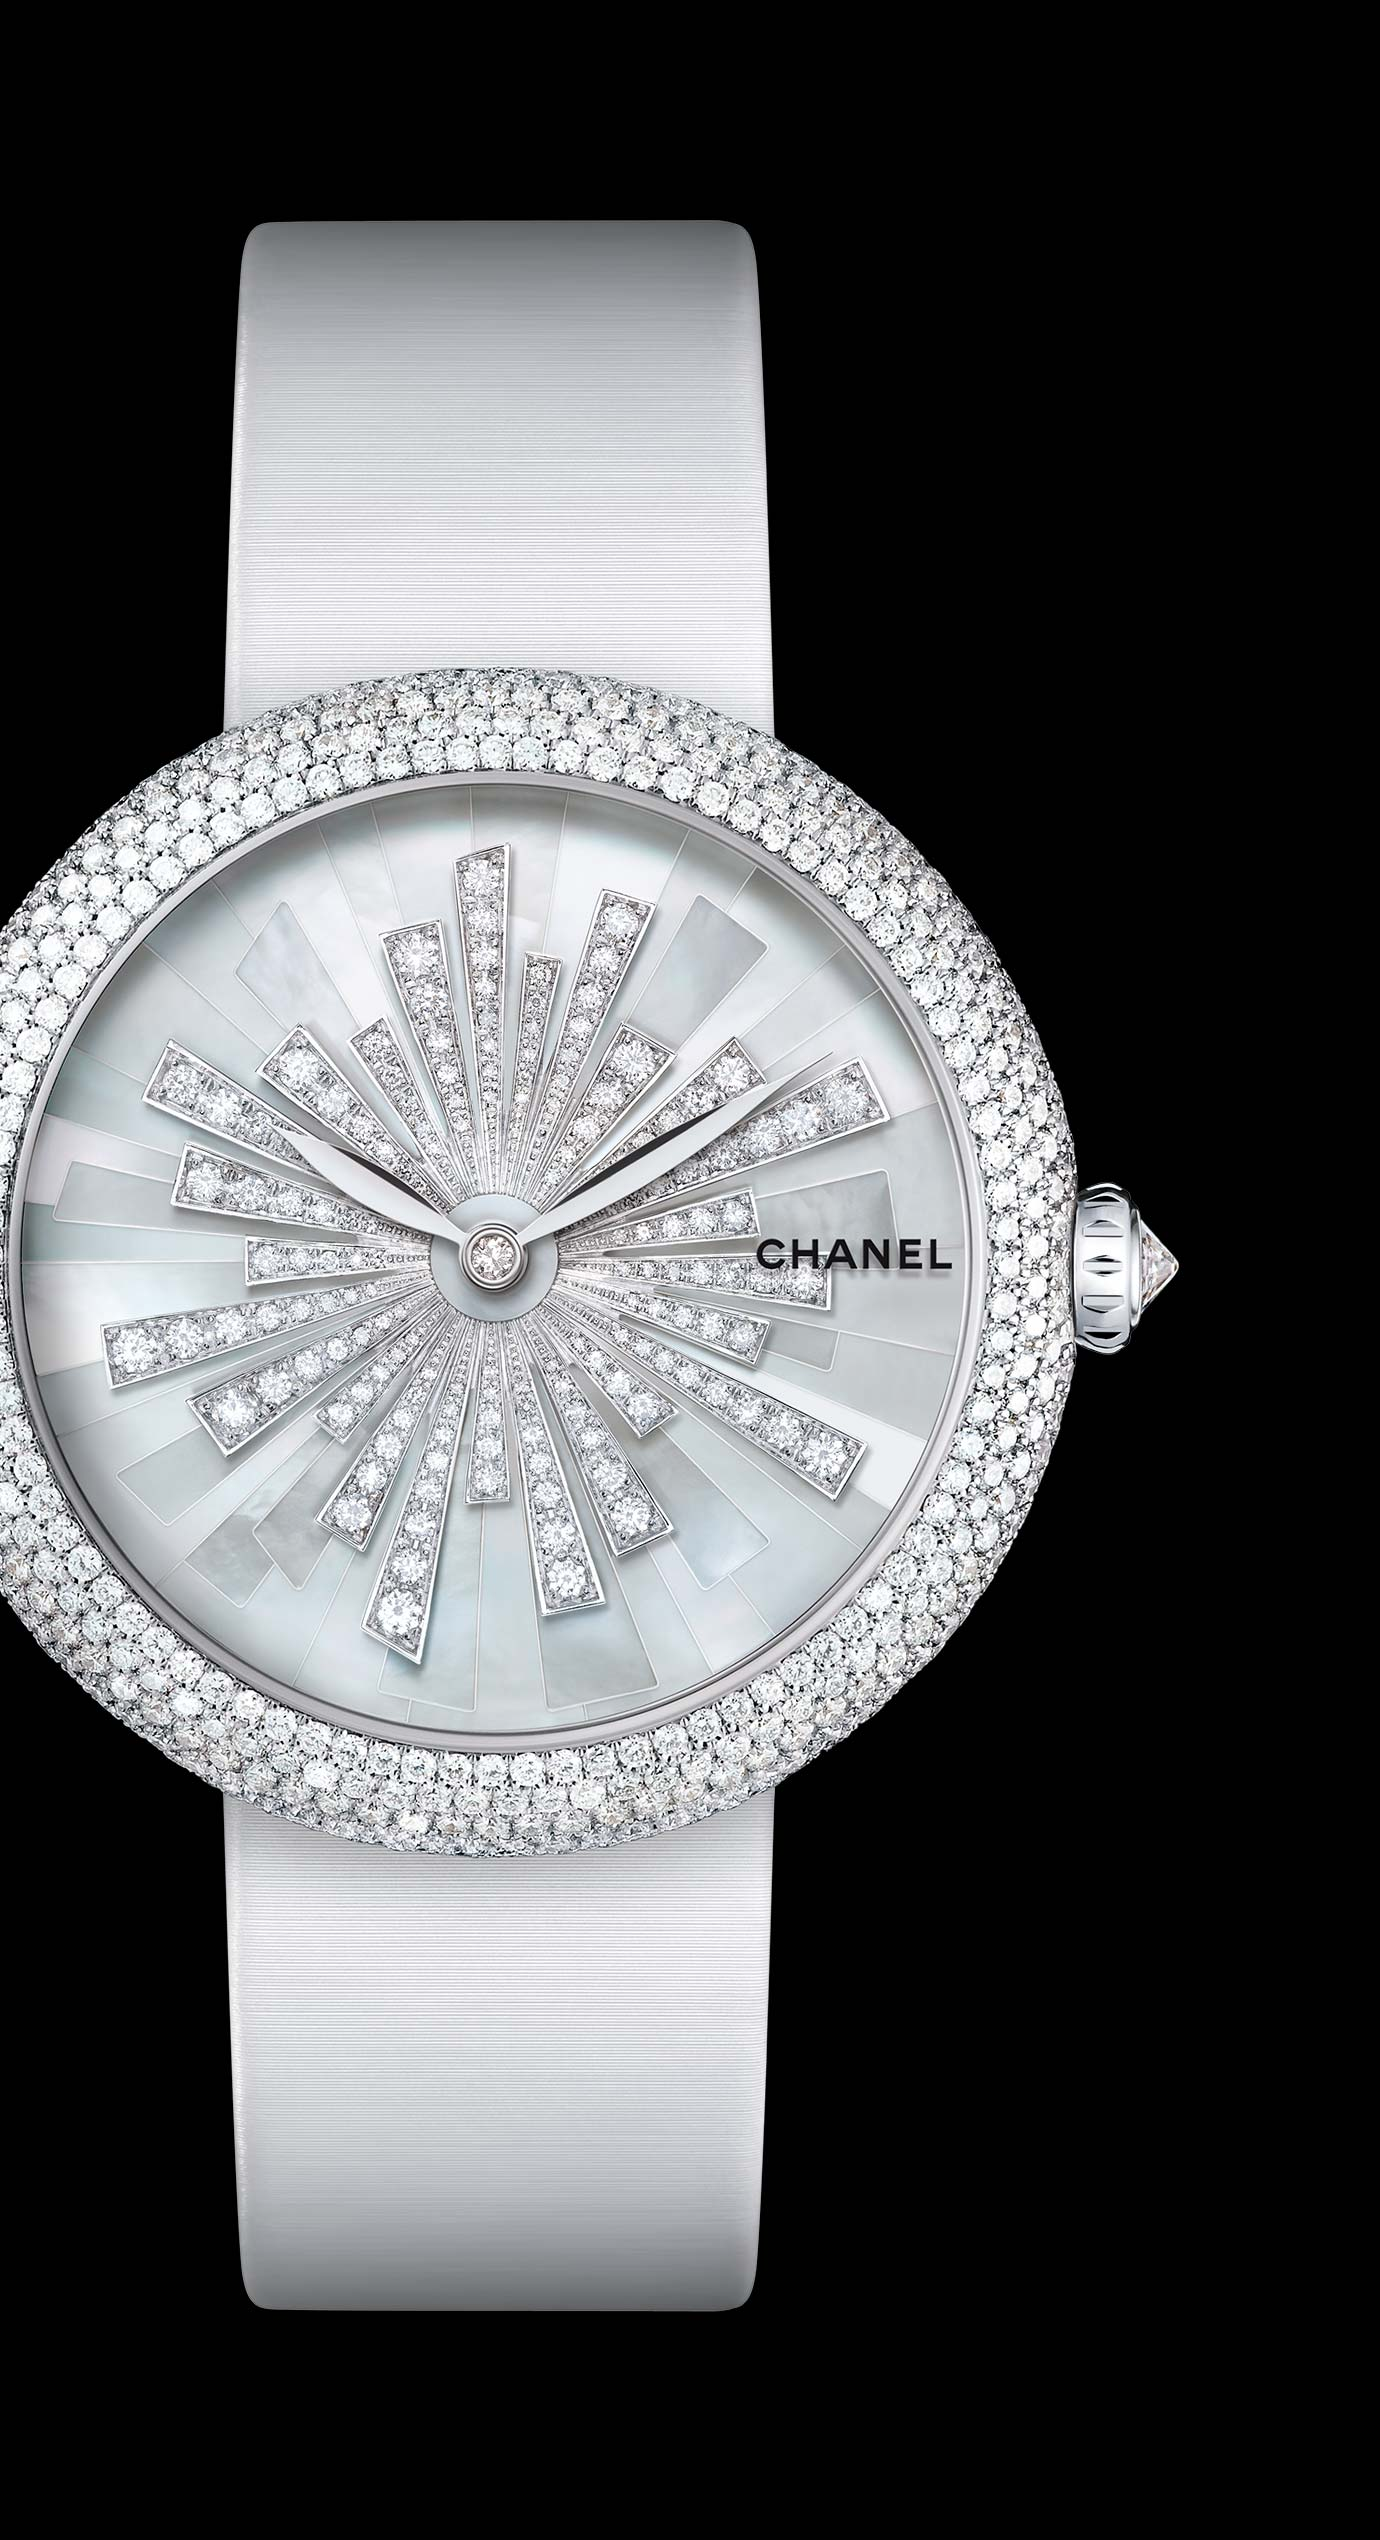 Mademoiselle Privé Bijoux de Diamants Soleil Jewellery watch - mother-of-pearl marquetry and diamonds. - Enlarged view